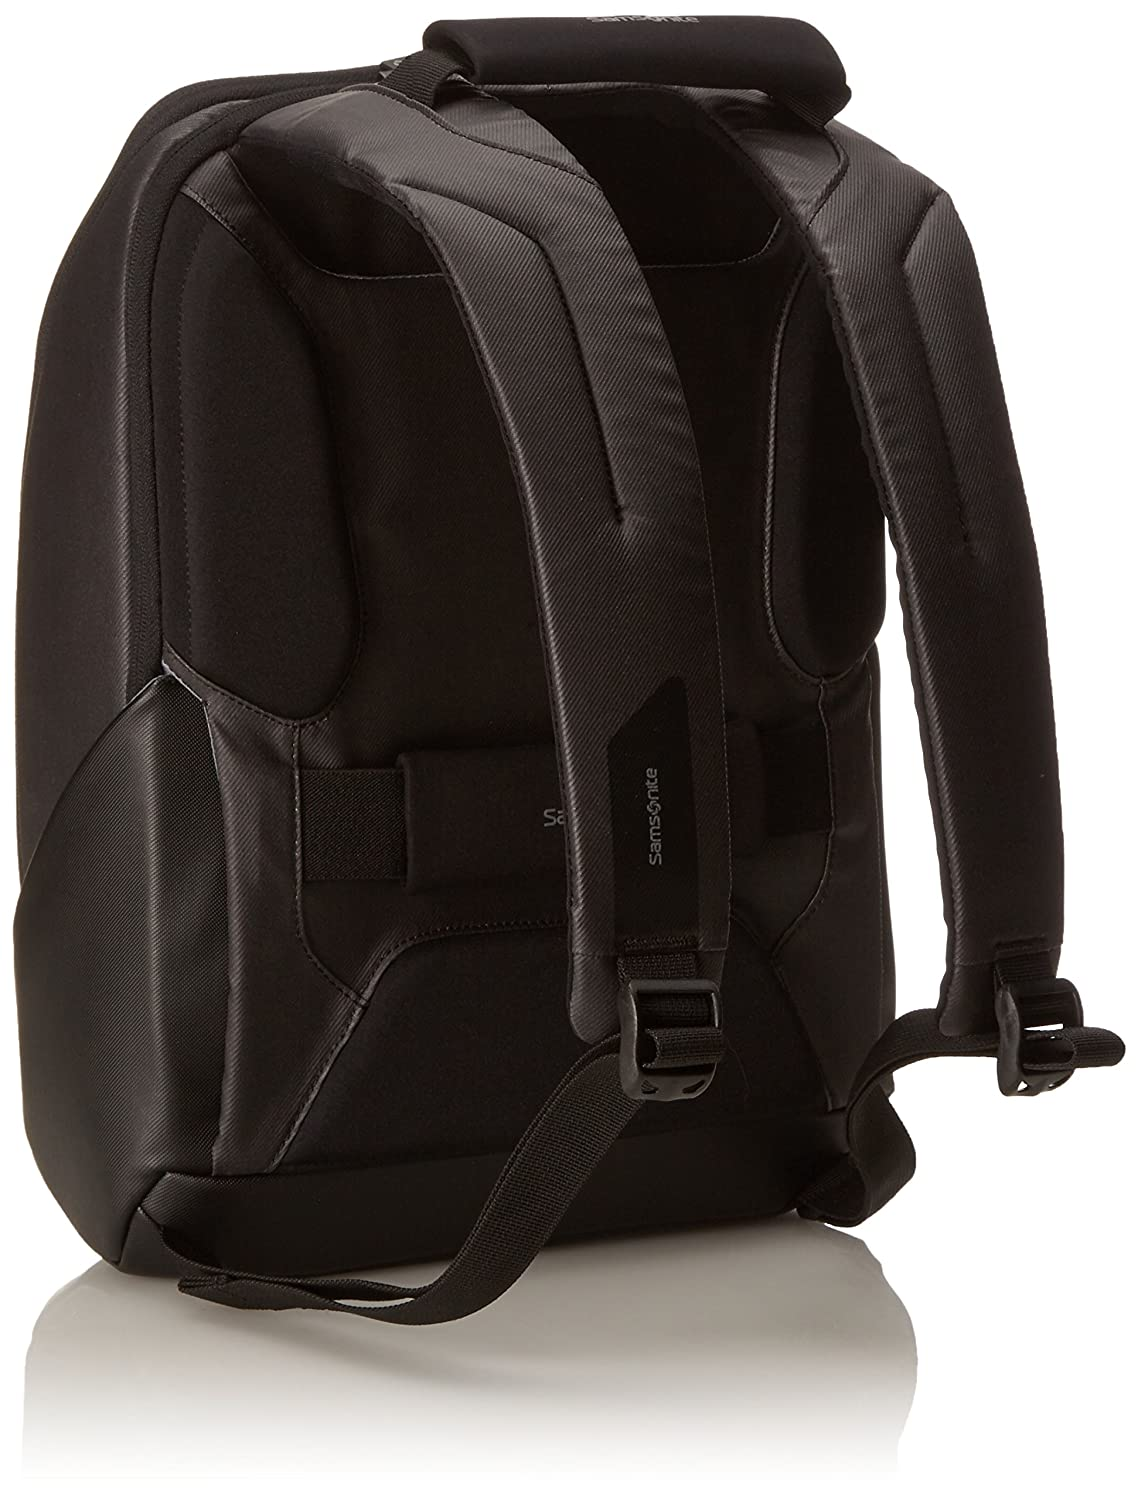 Samsonite Mochila Escolar, 41 cm, Color Negro (Basalt Black): Amazon.es: Equipaje